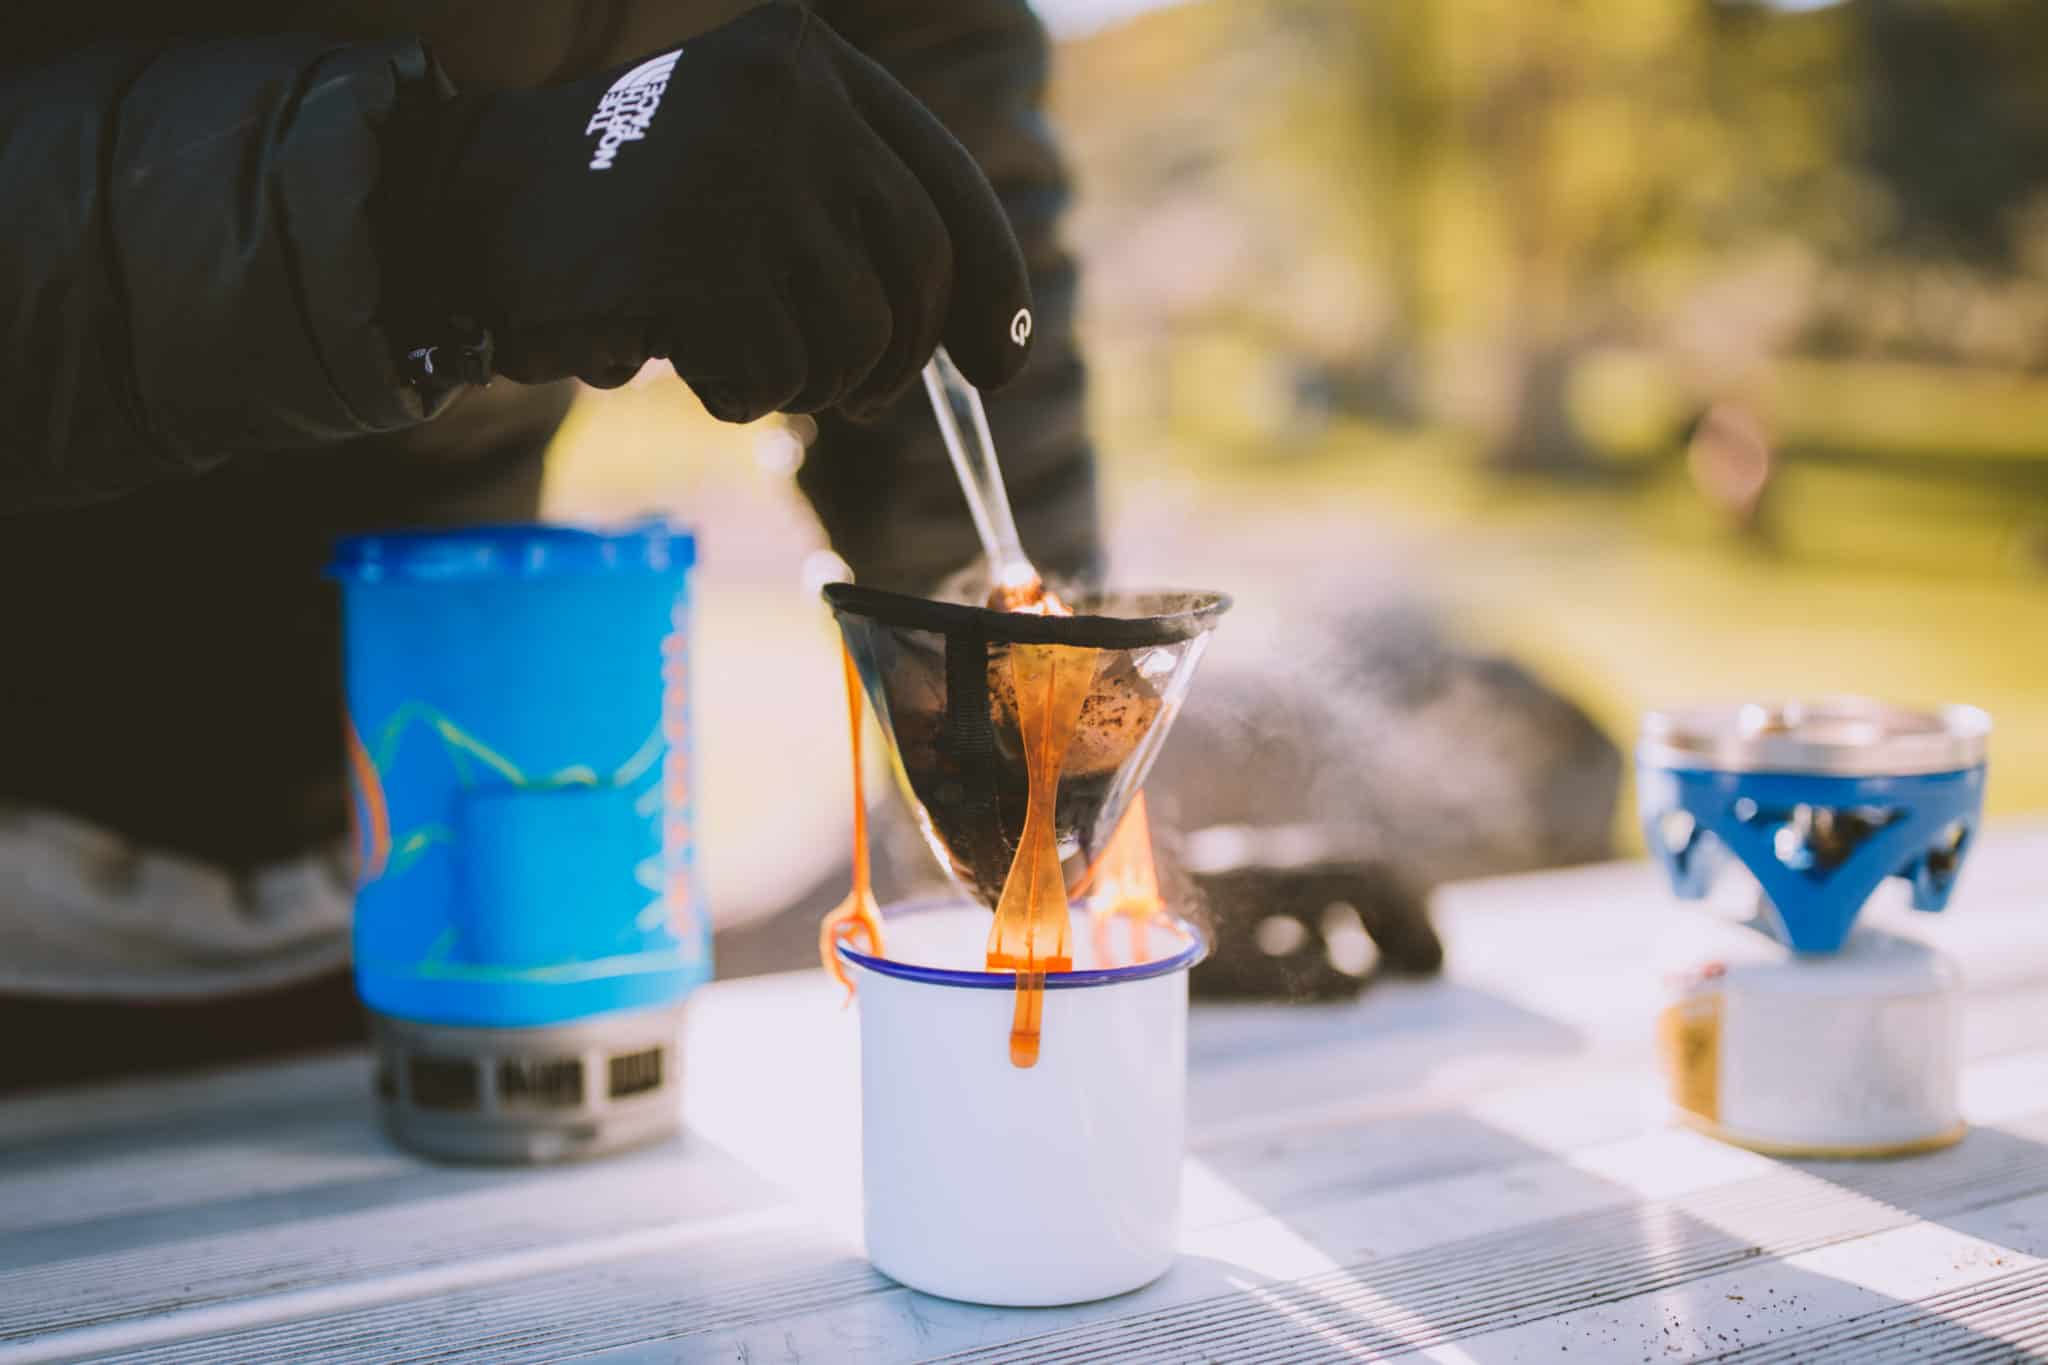 Car Camping Hack - Preparing Coffee On The Road